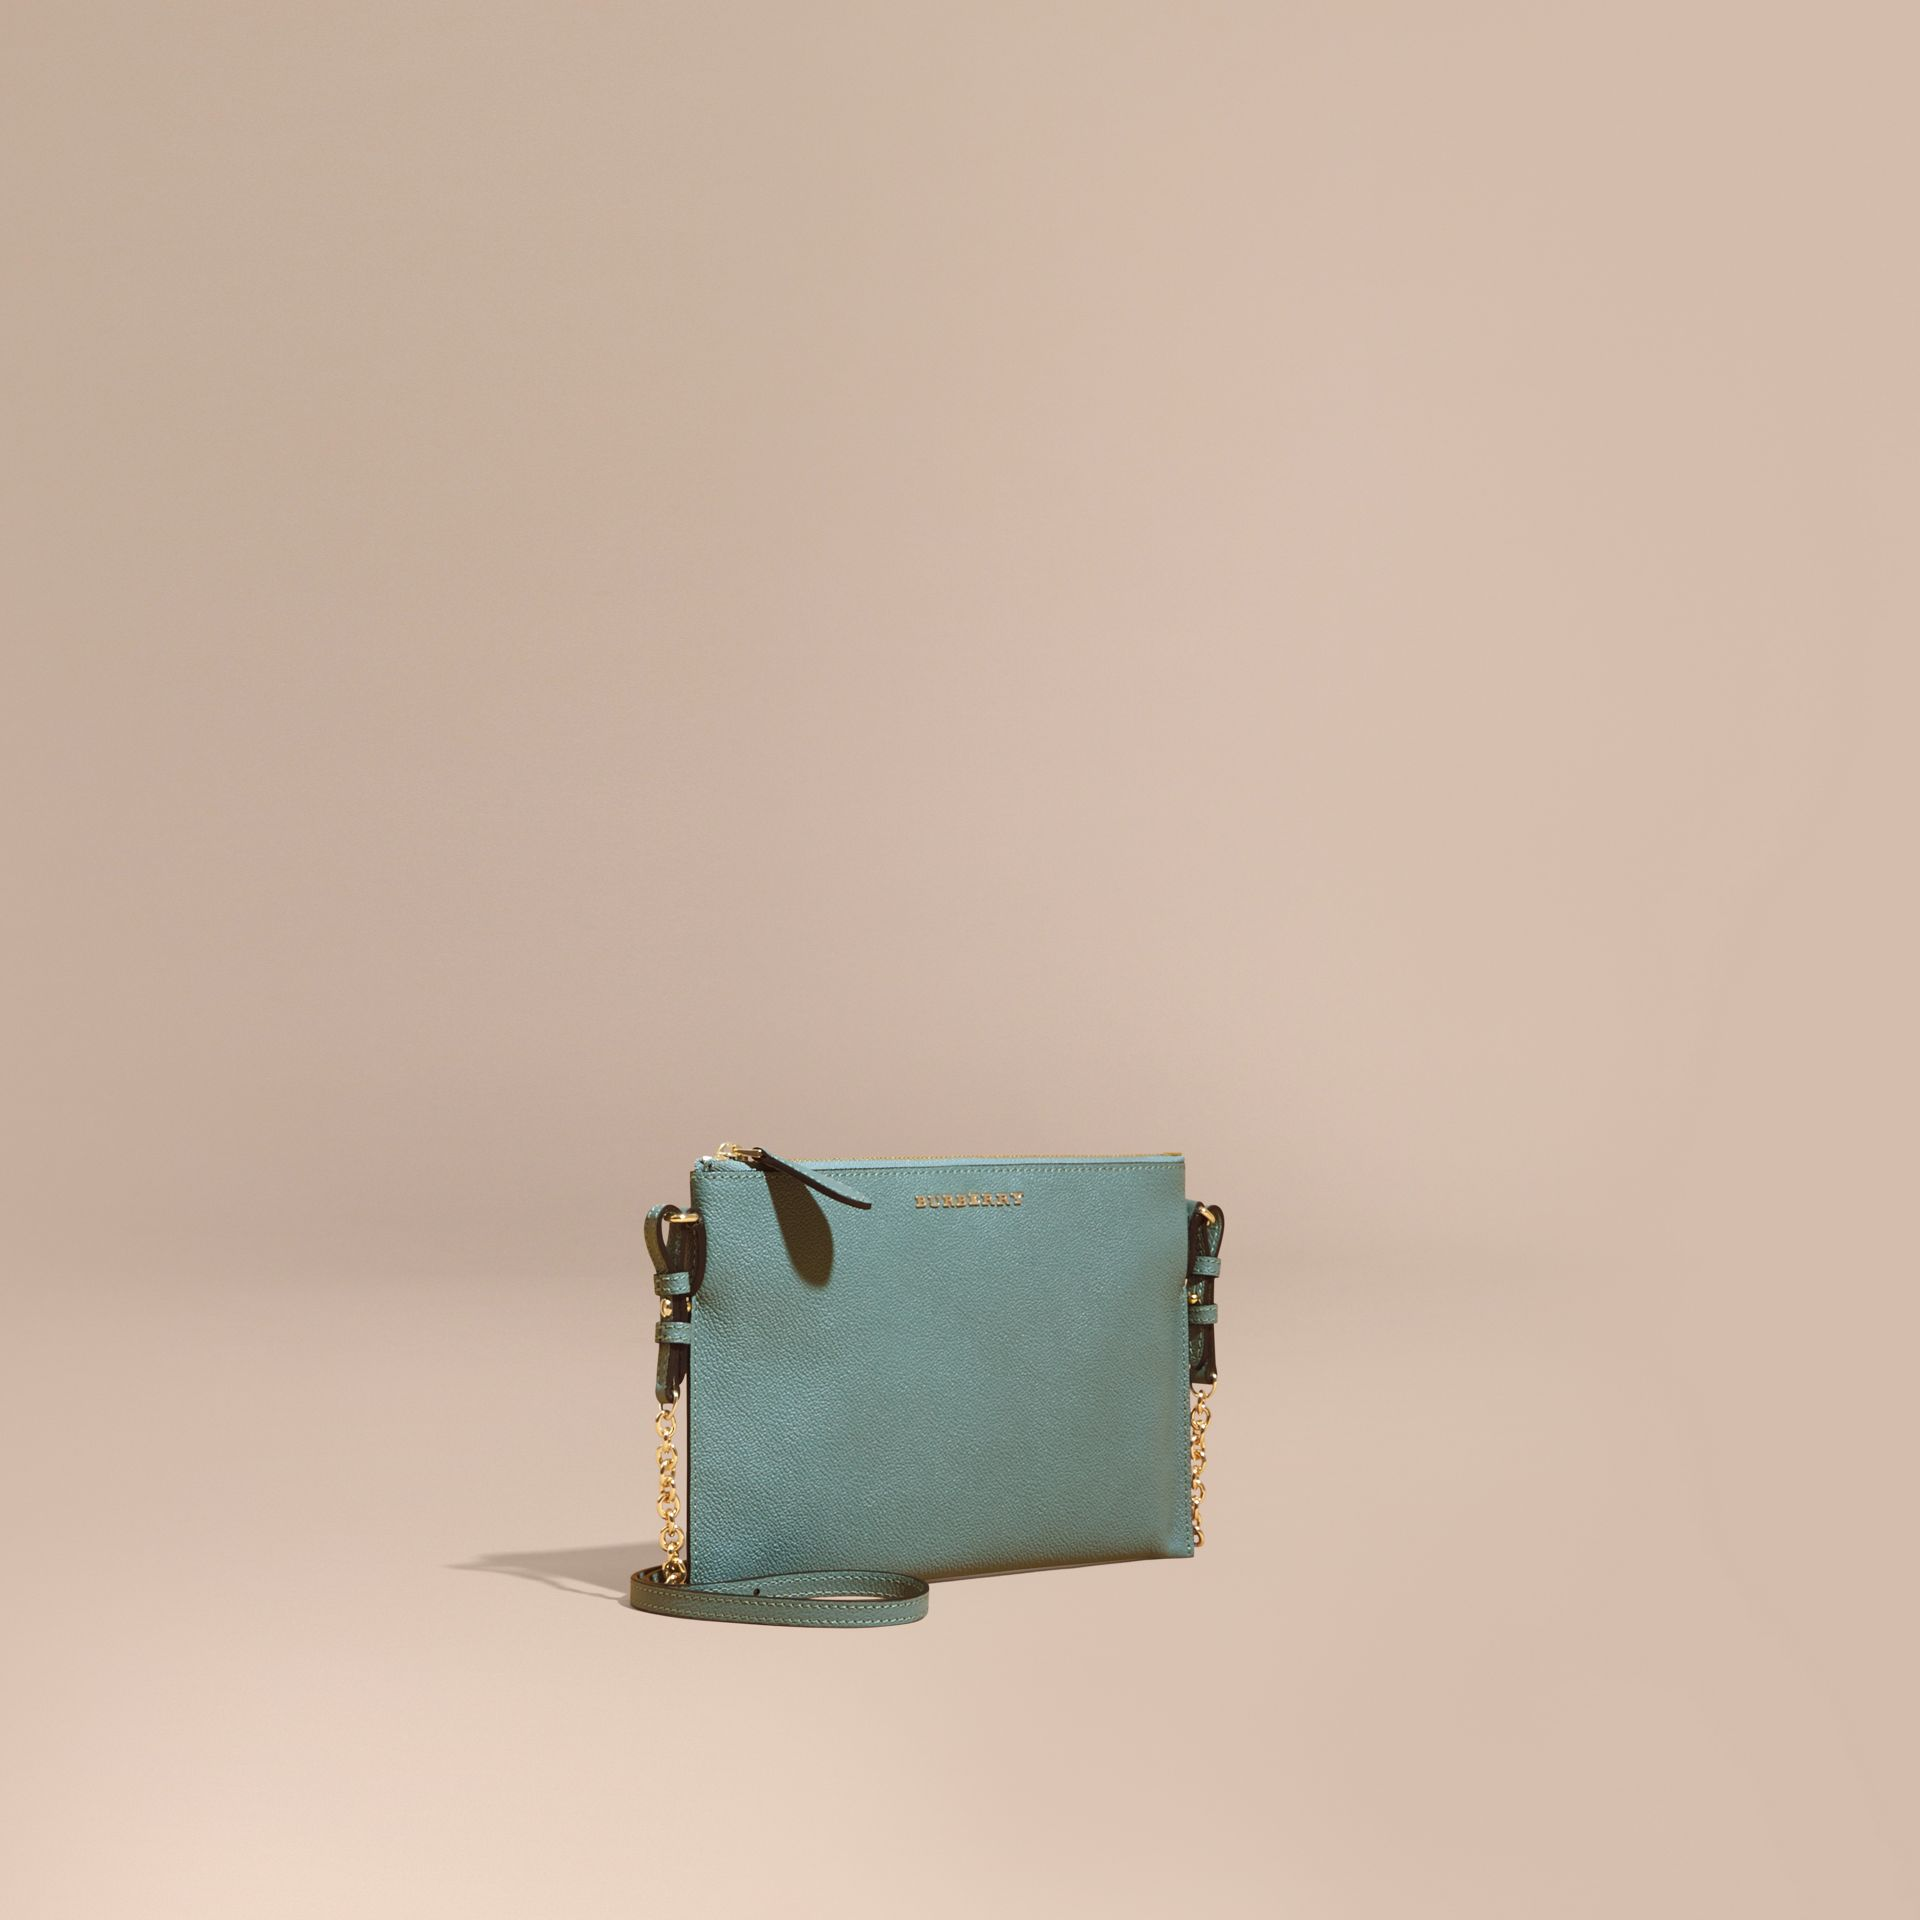 Leather Clutch Bag with Check Lining Eucalyptus Green - gallery image 1